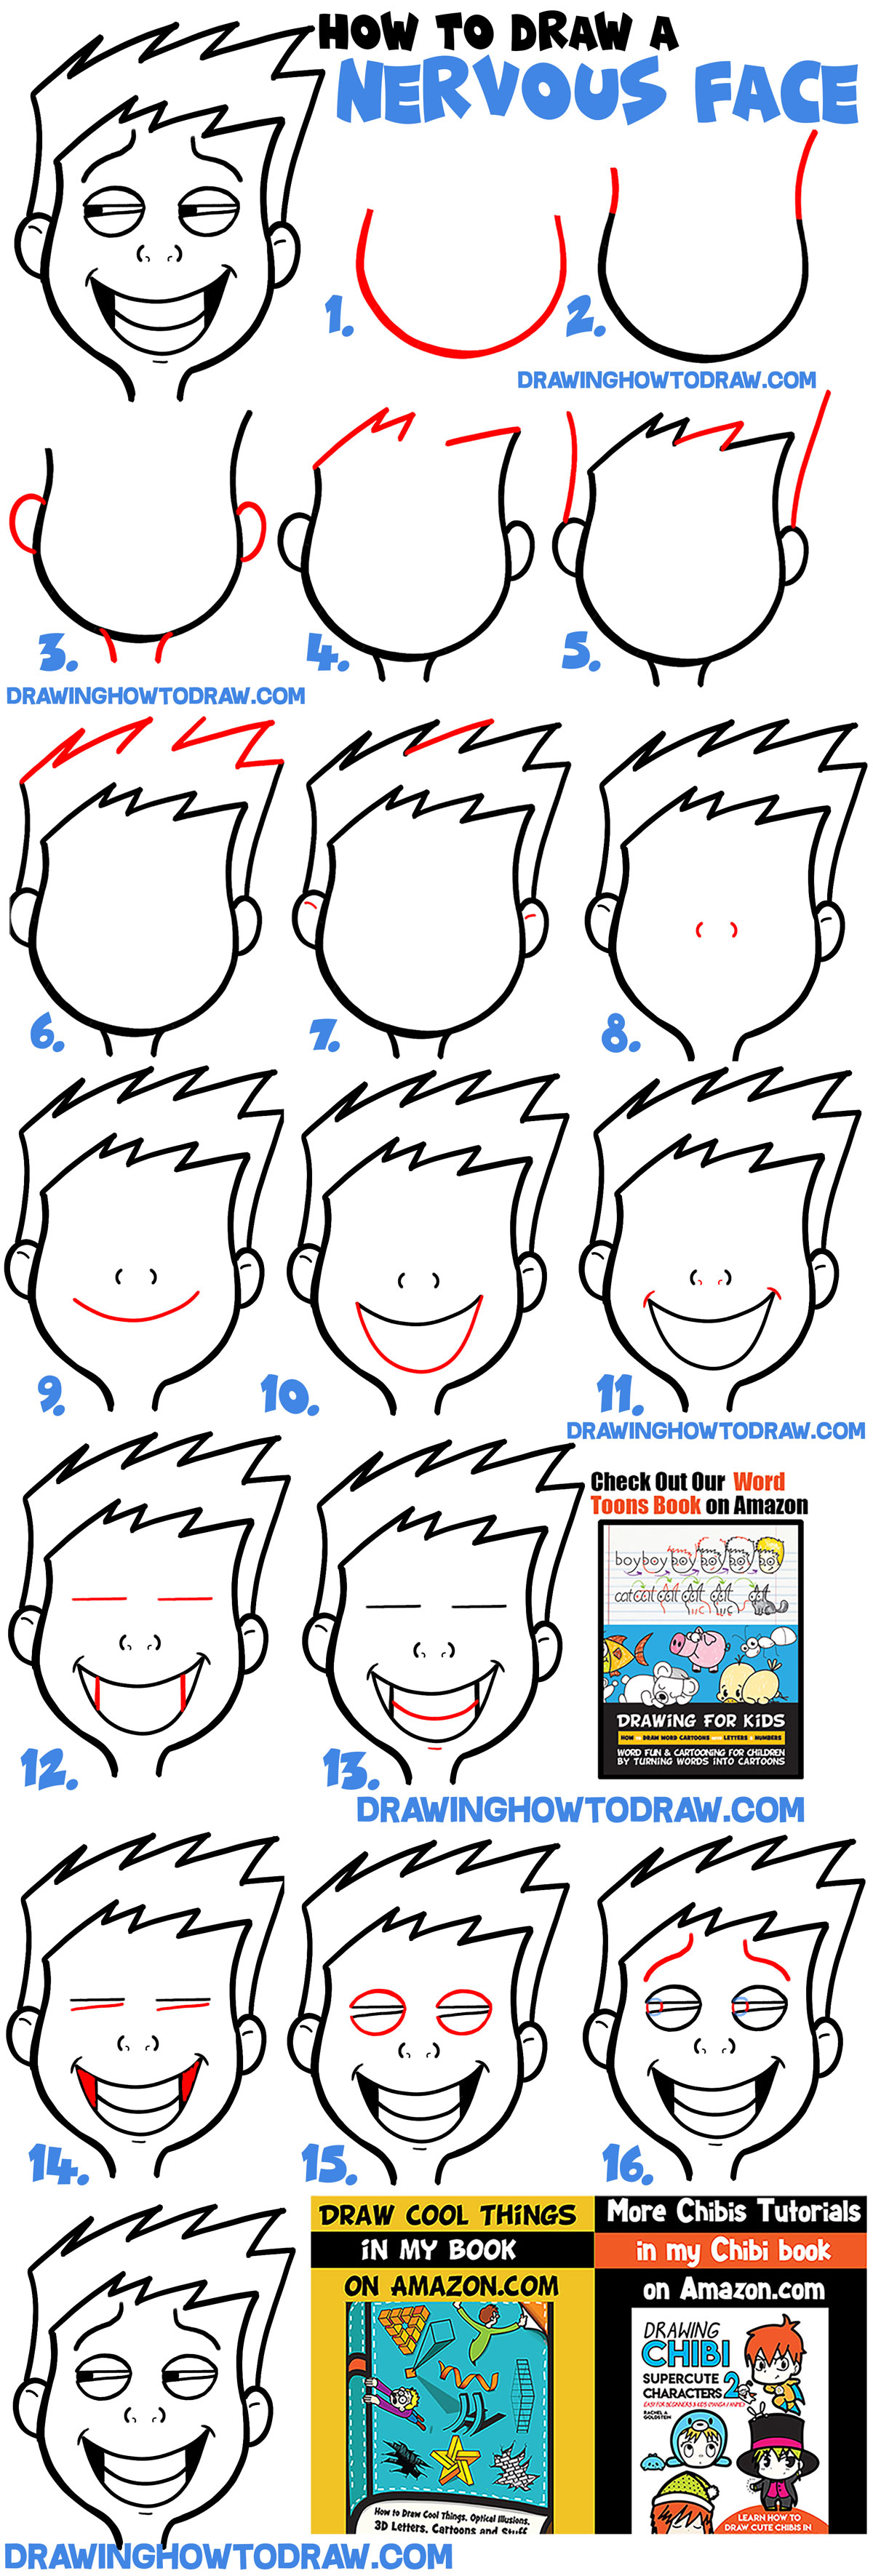 How to Draw Cartoon Facial Expressions : Uneasy, Uncomfortable, Embarrassed, Nervous